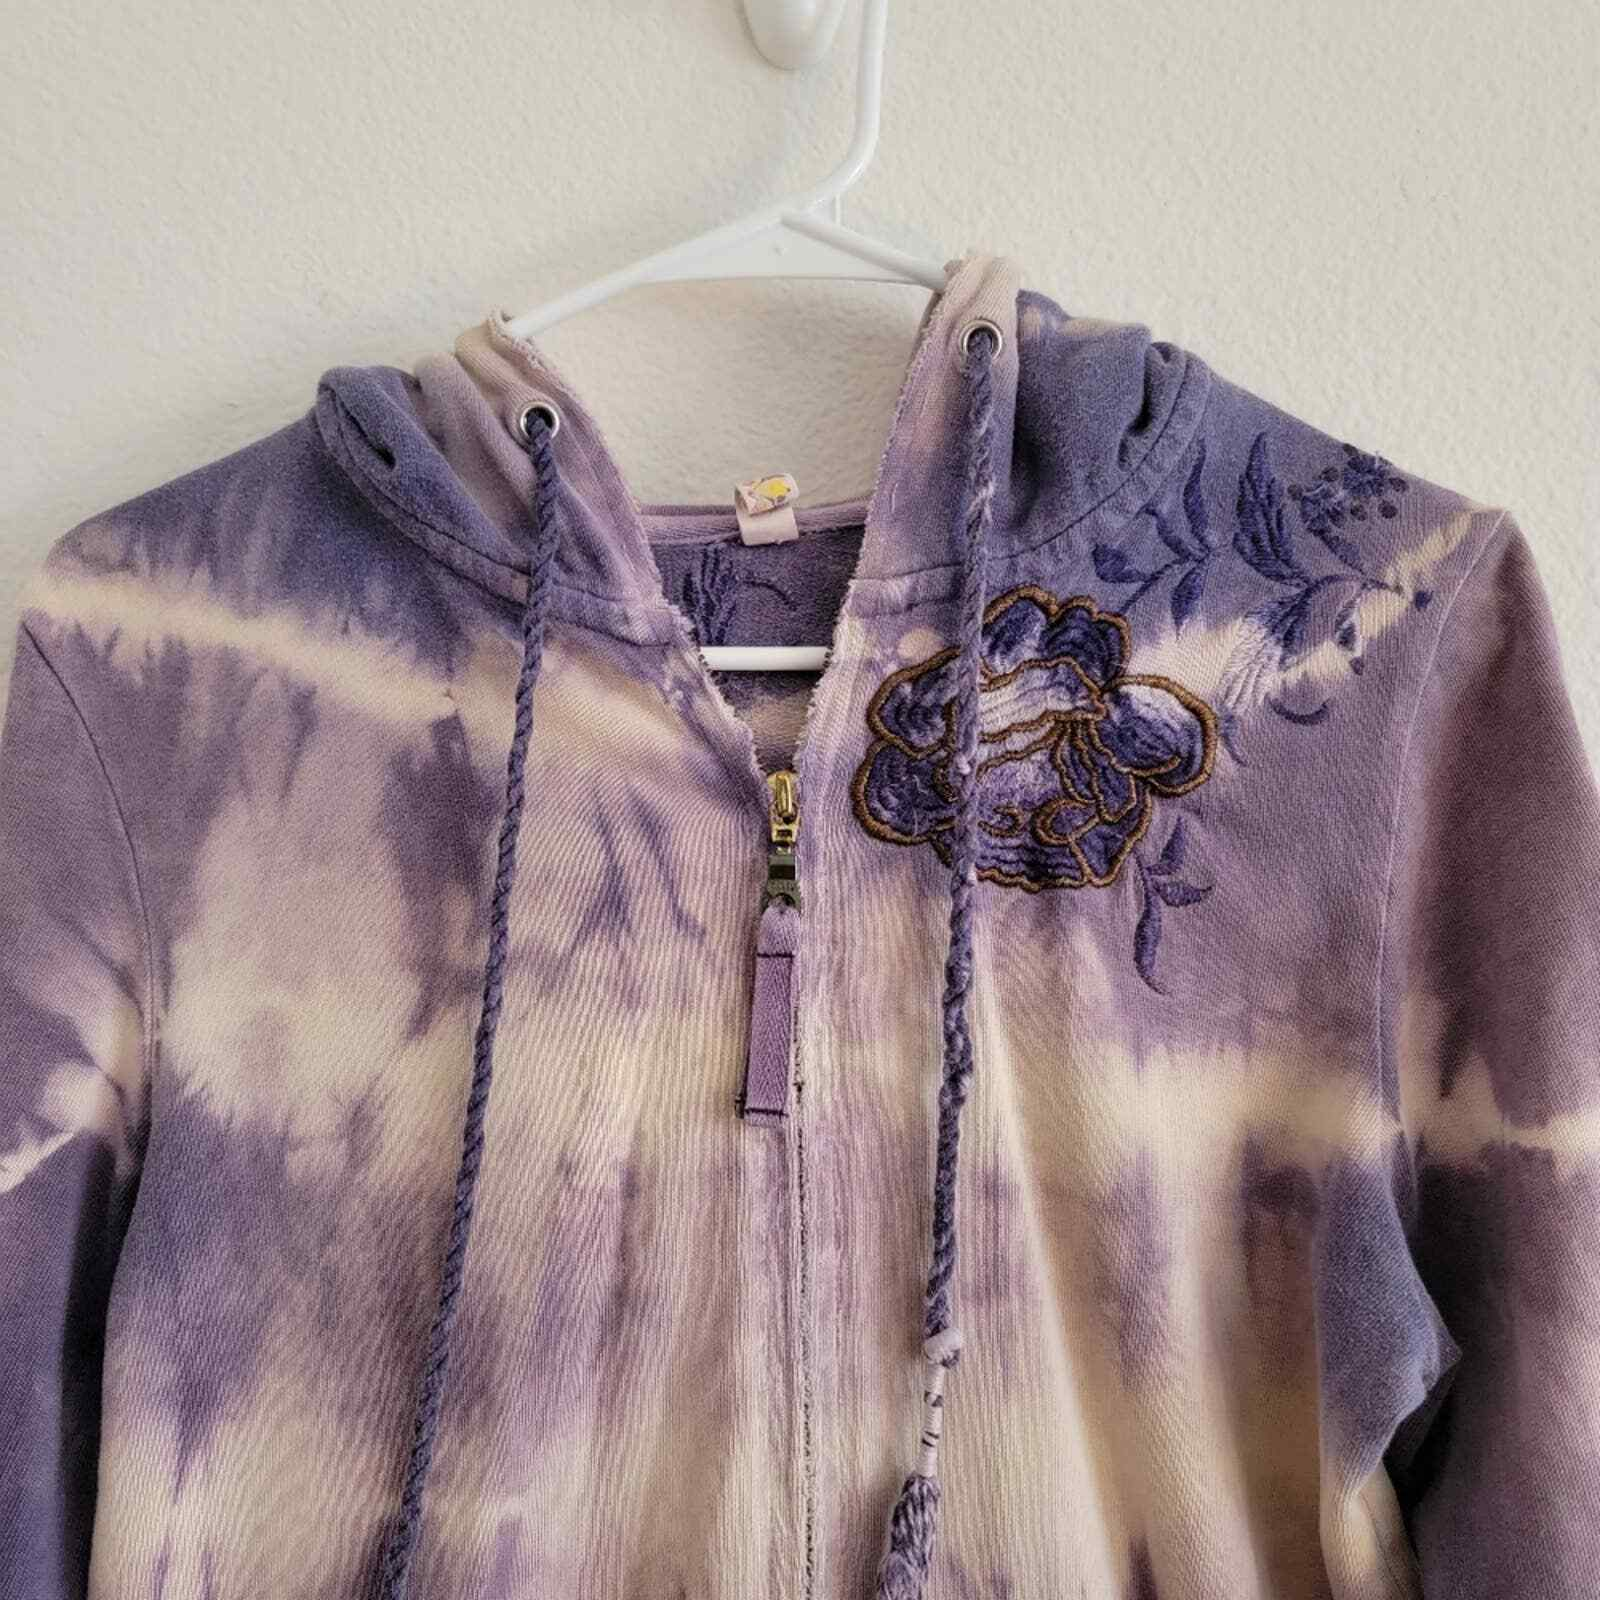 Penelope Violet Tie-Dye Embroidered Zip Up Sweater - image 2